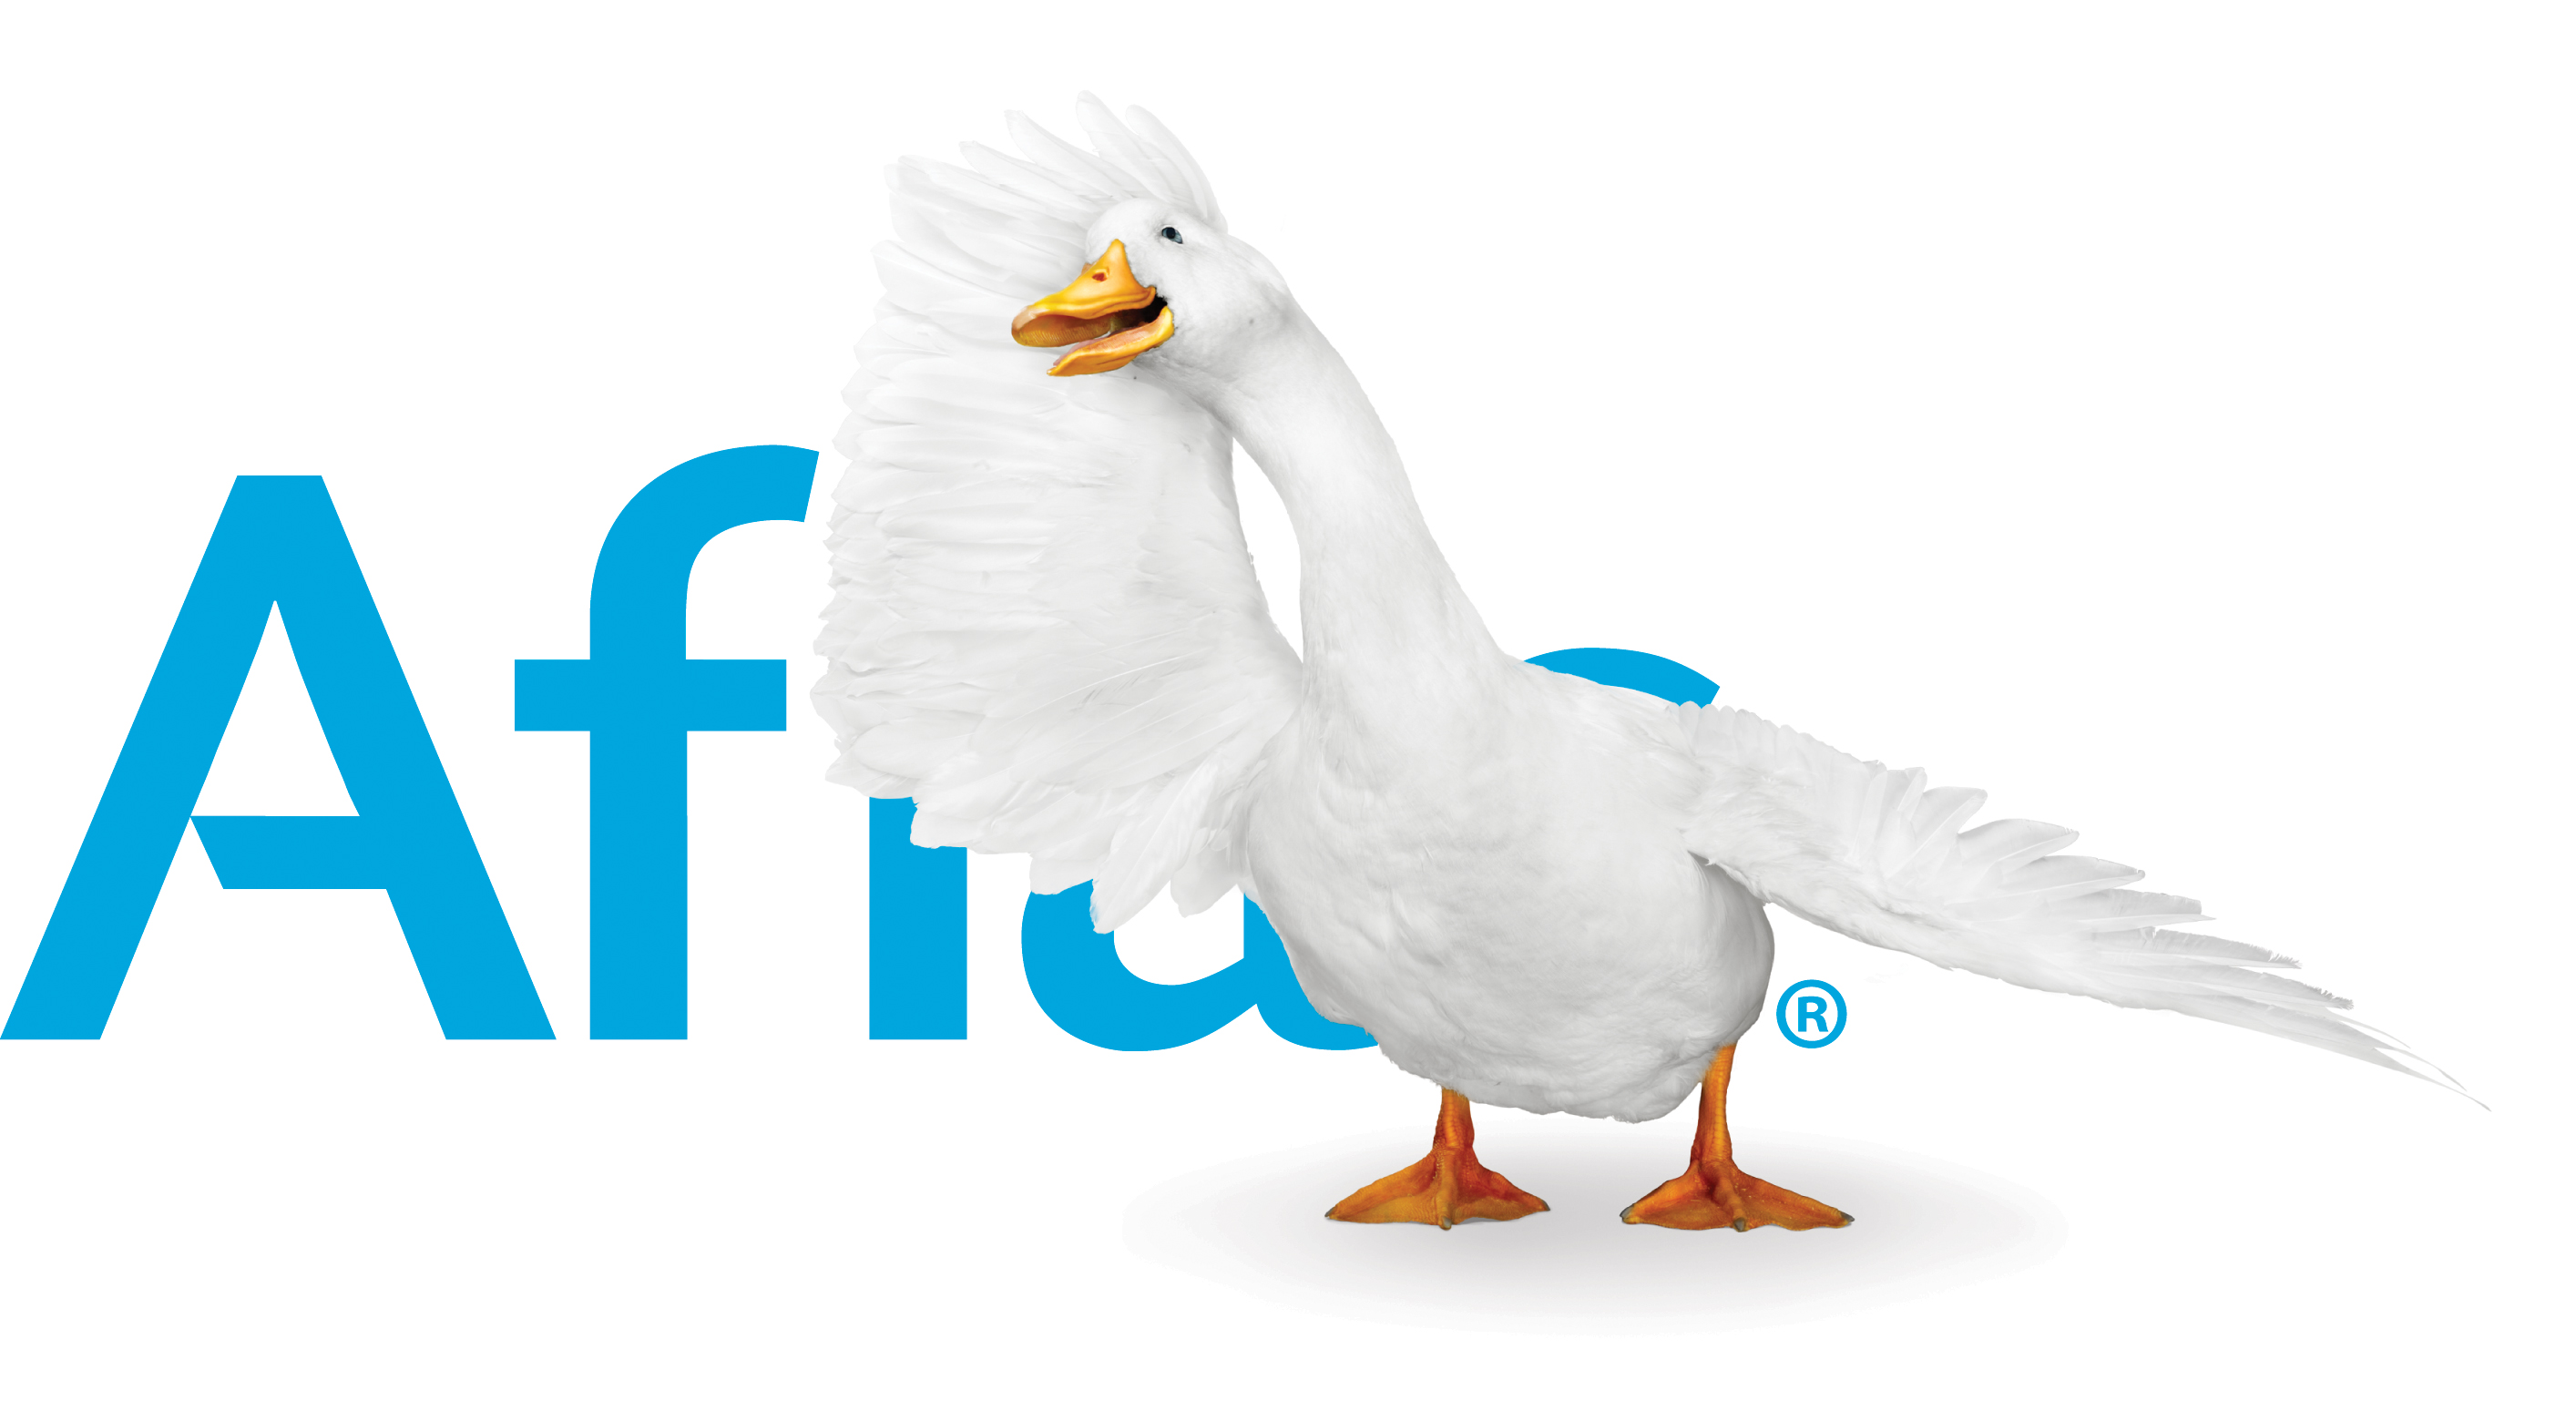 Robert Louey Design Pagenova Grooms Aflac Duck For 10th